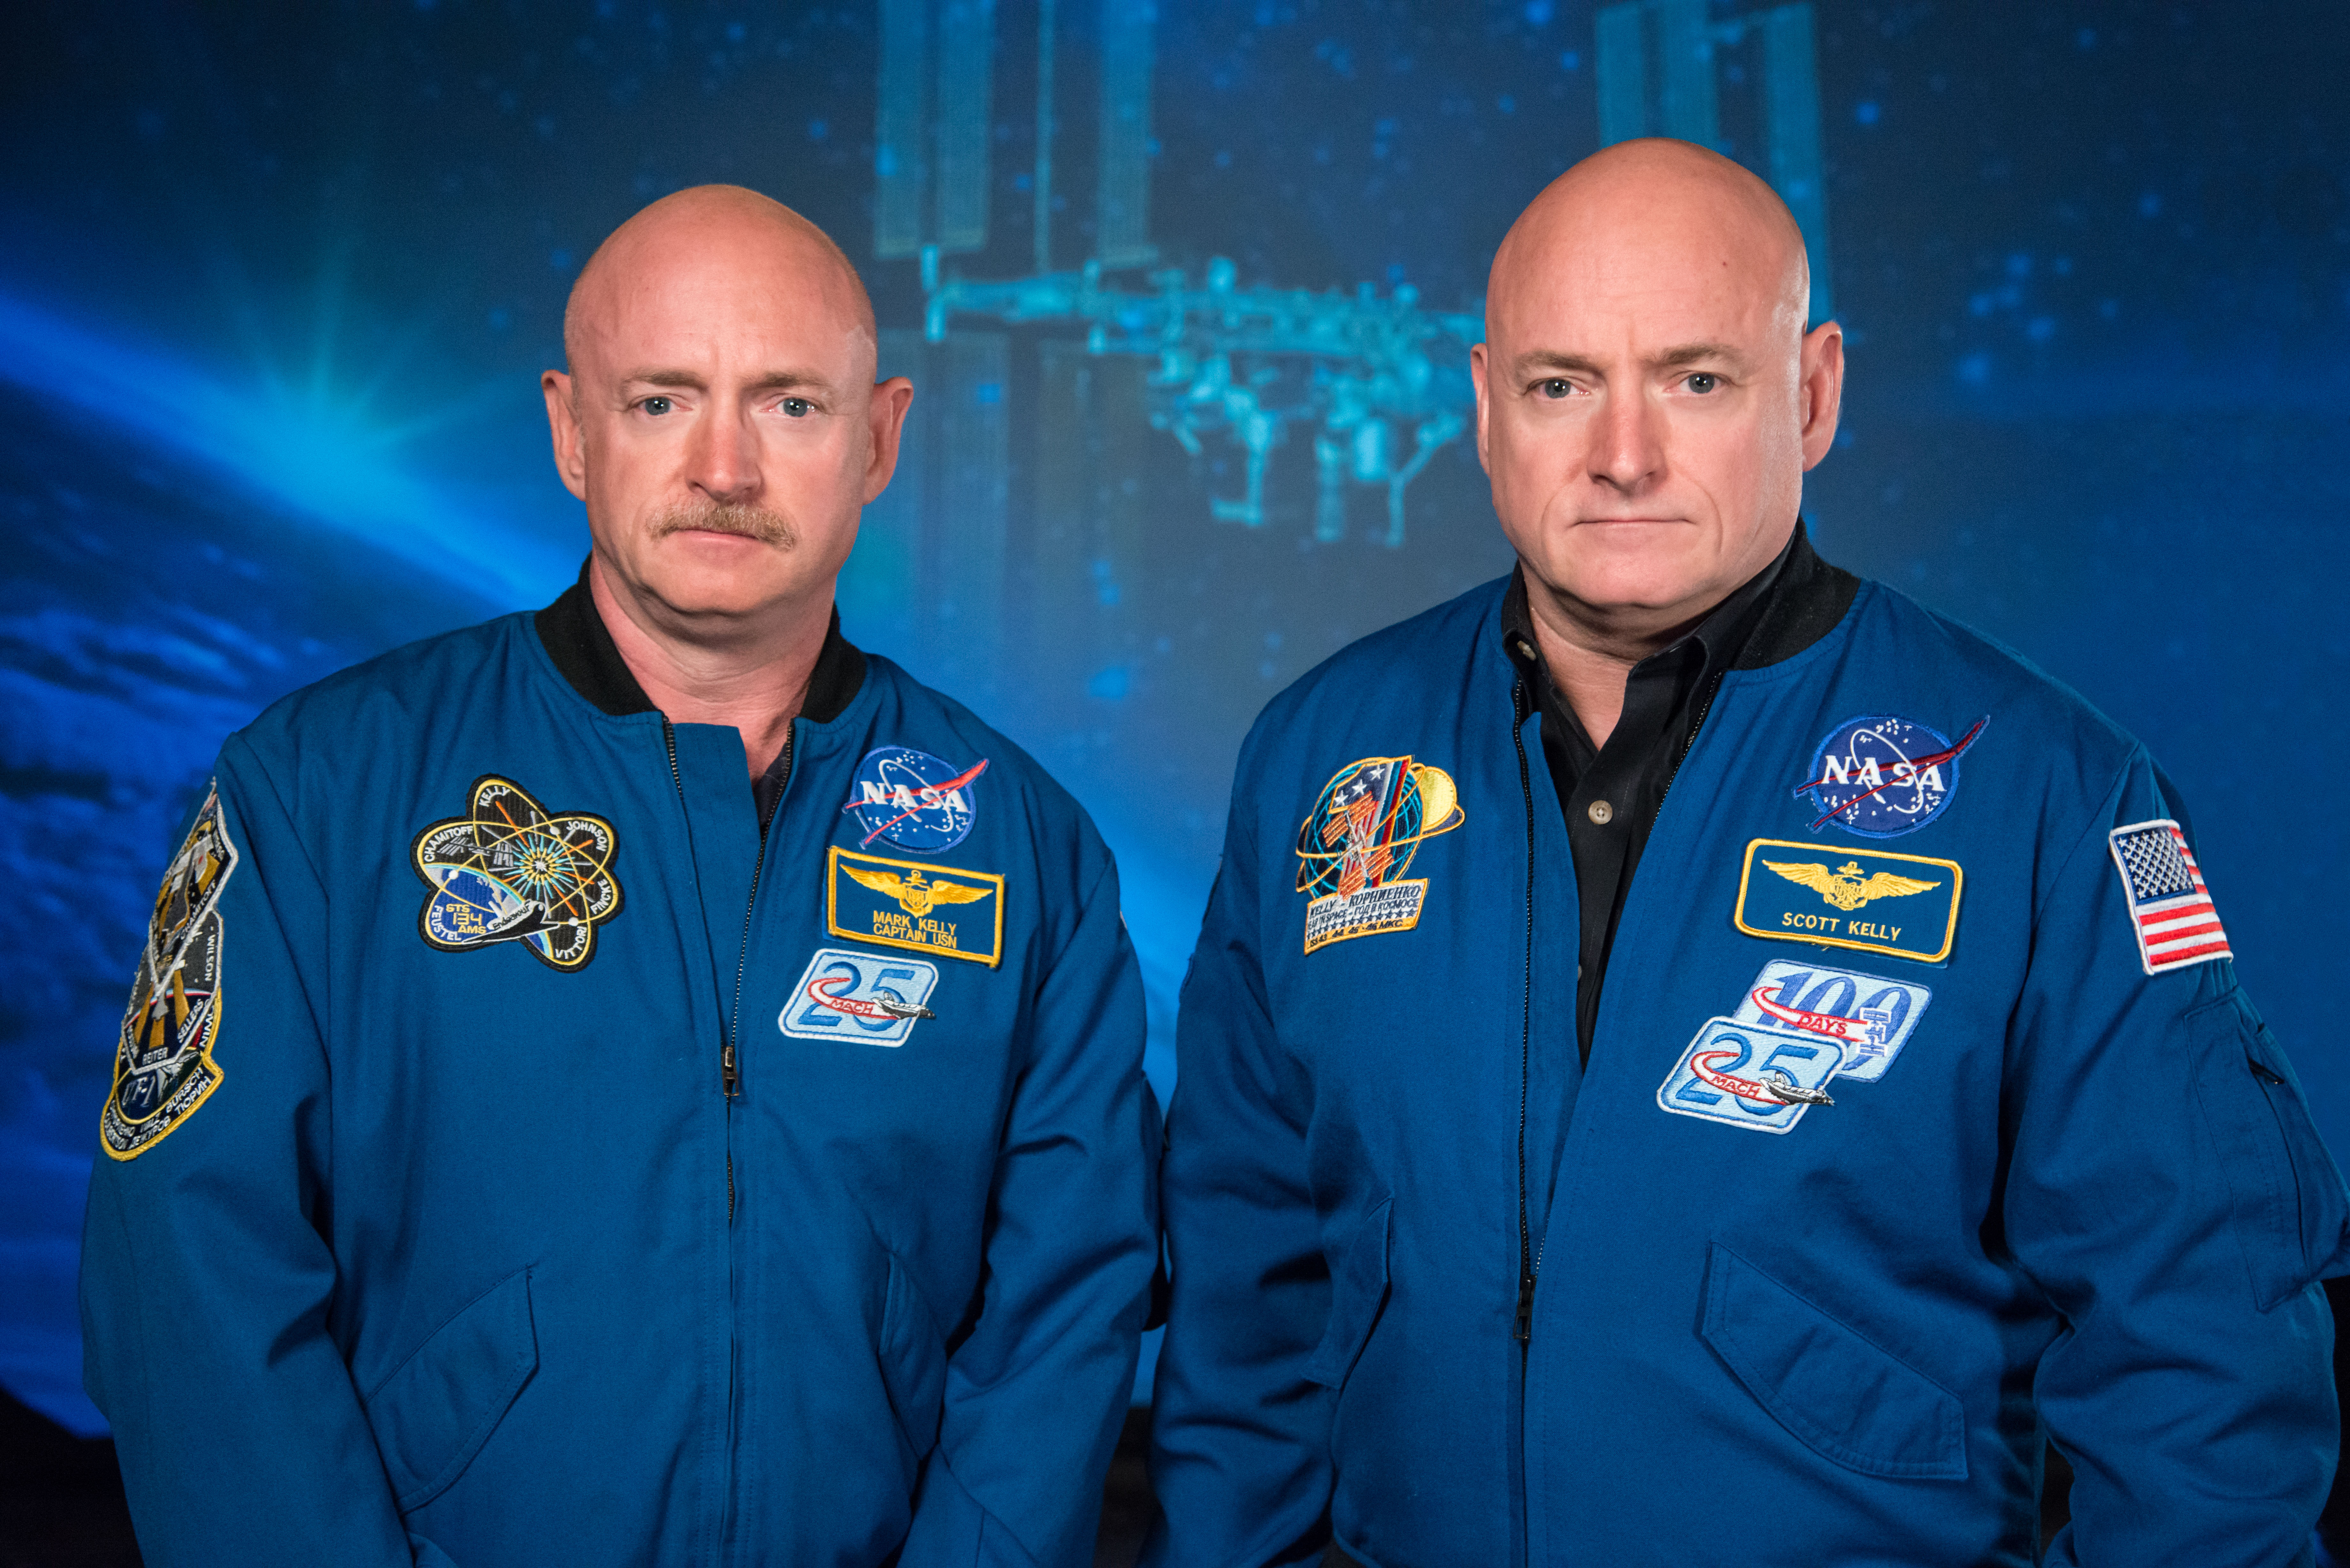 Mark and Scott Kelly NASA twins